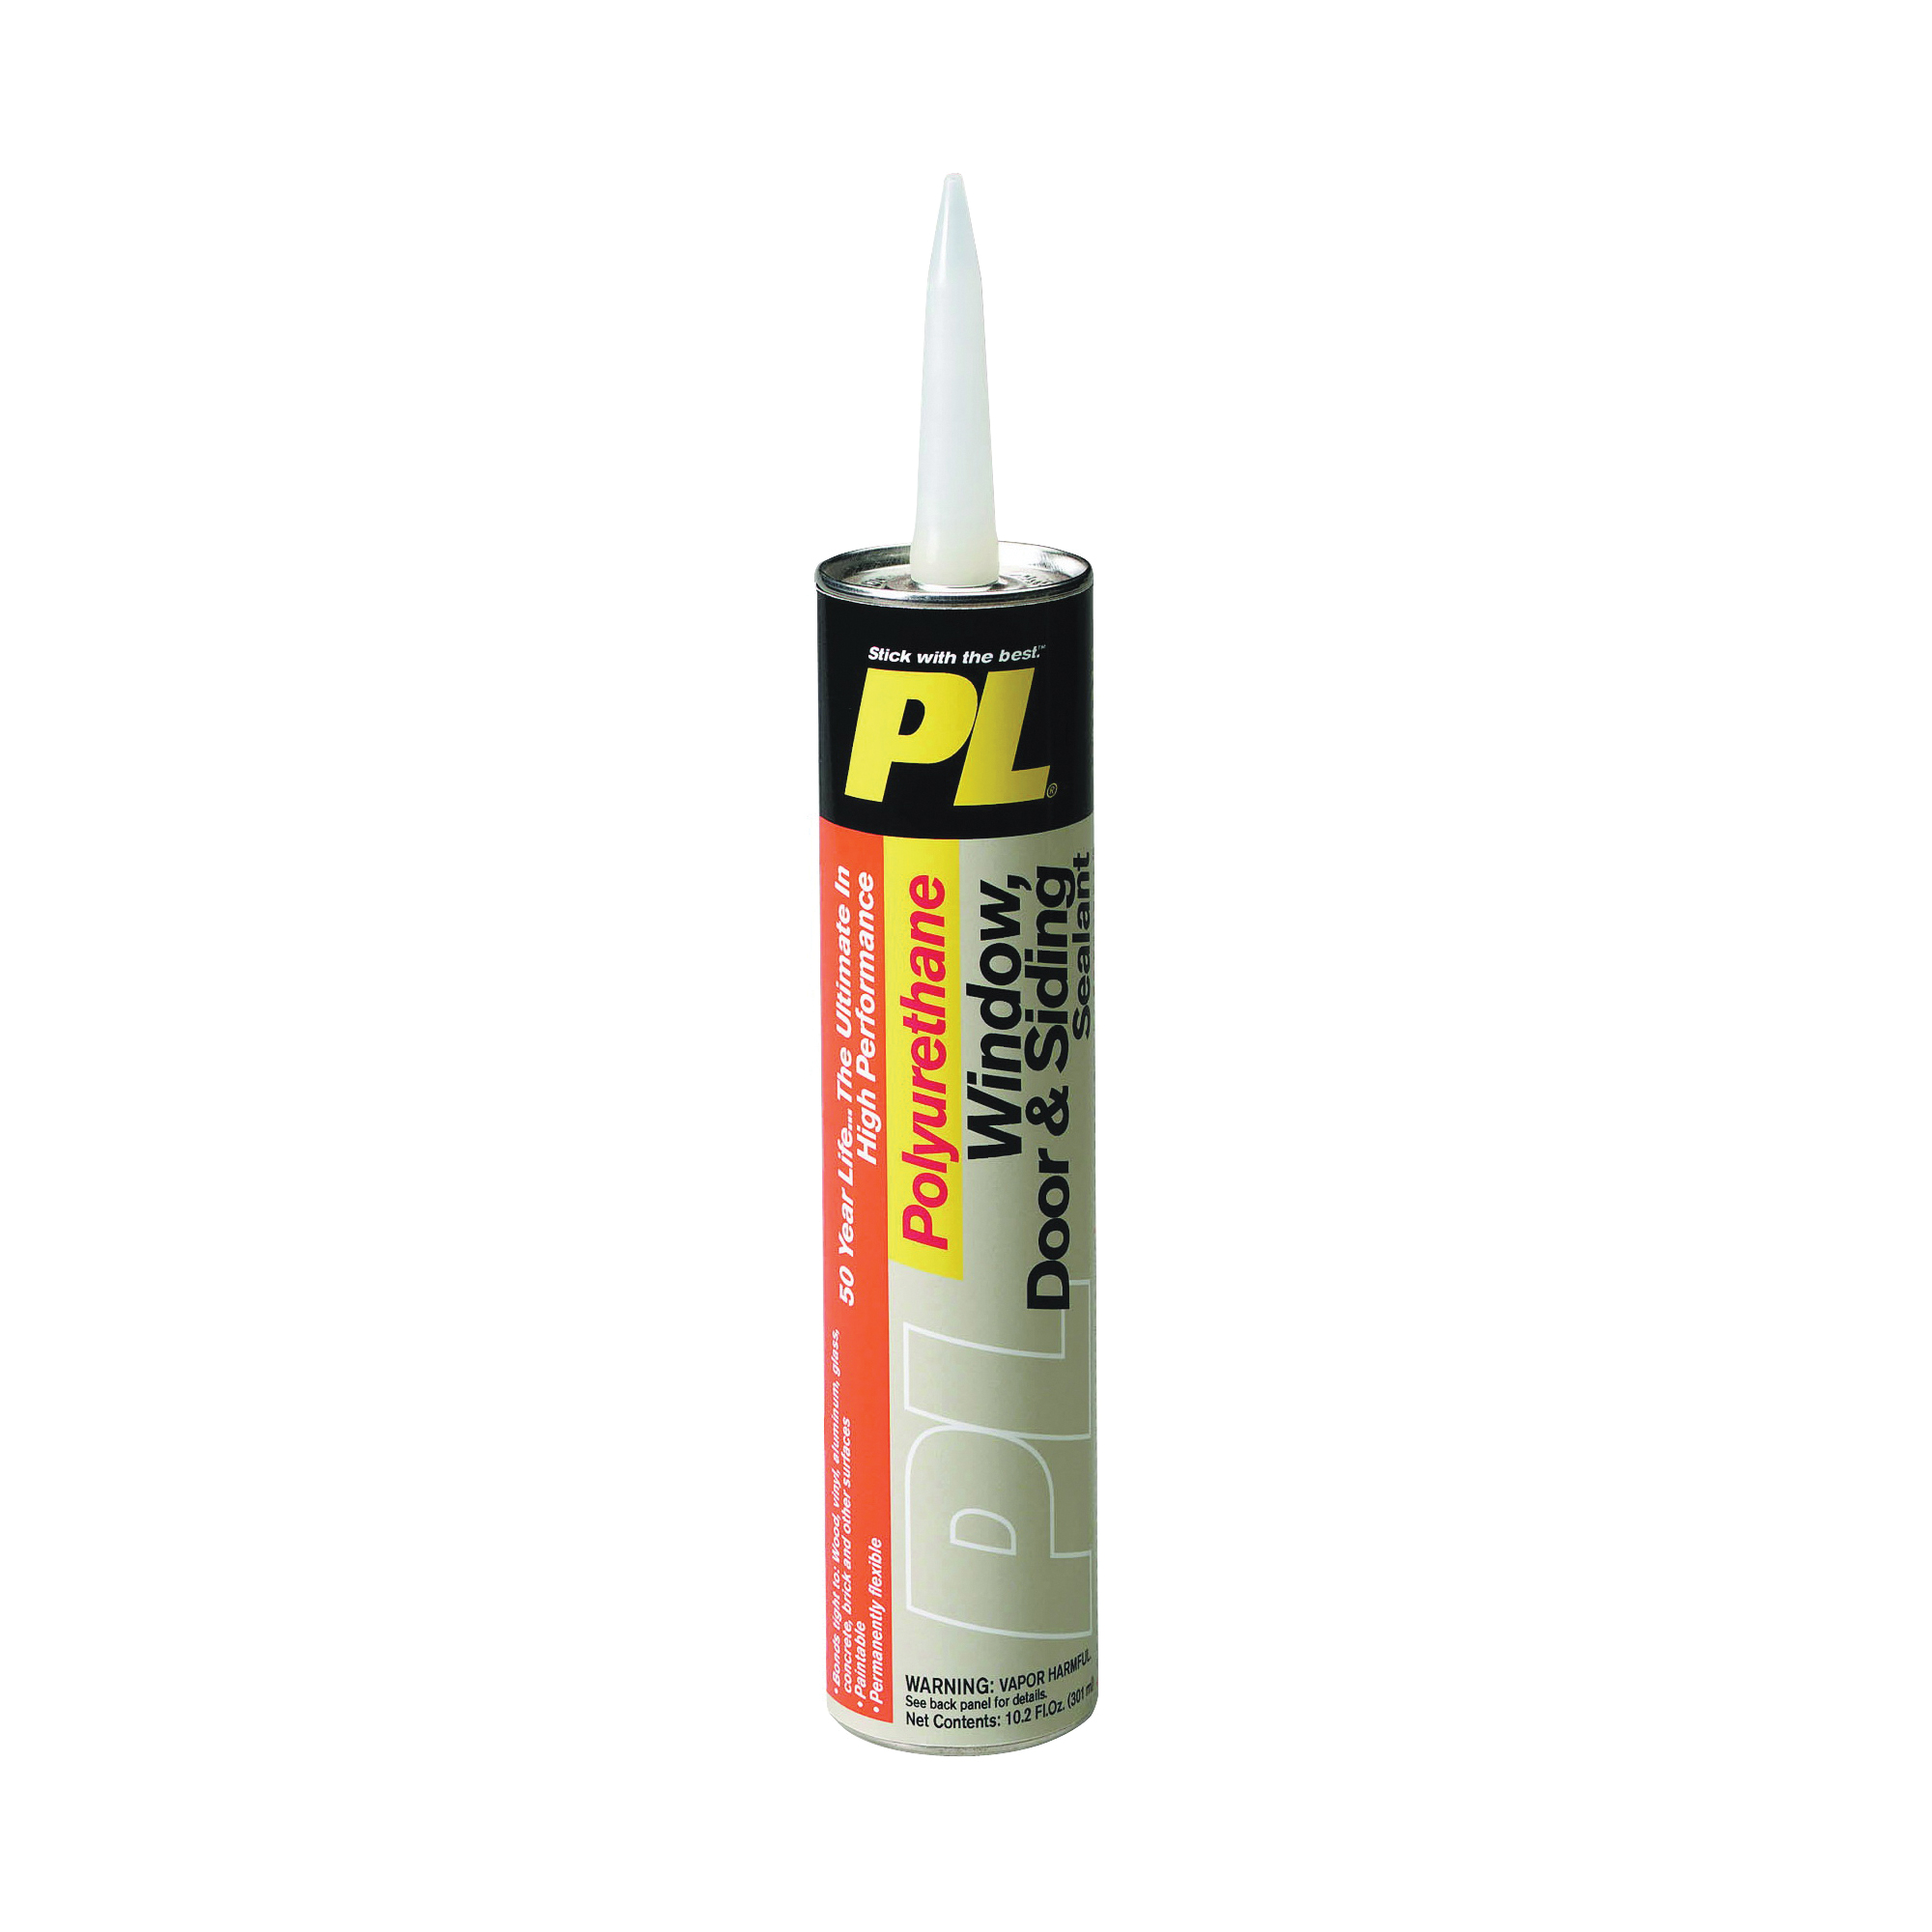 Picture of Loctite 1618516 Polyurethane Sealant, Redwood Tan, 7 Days Curing, 20 to 120 deg F, 10 oz Package, Cartridge